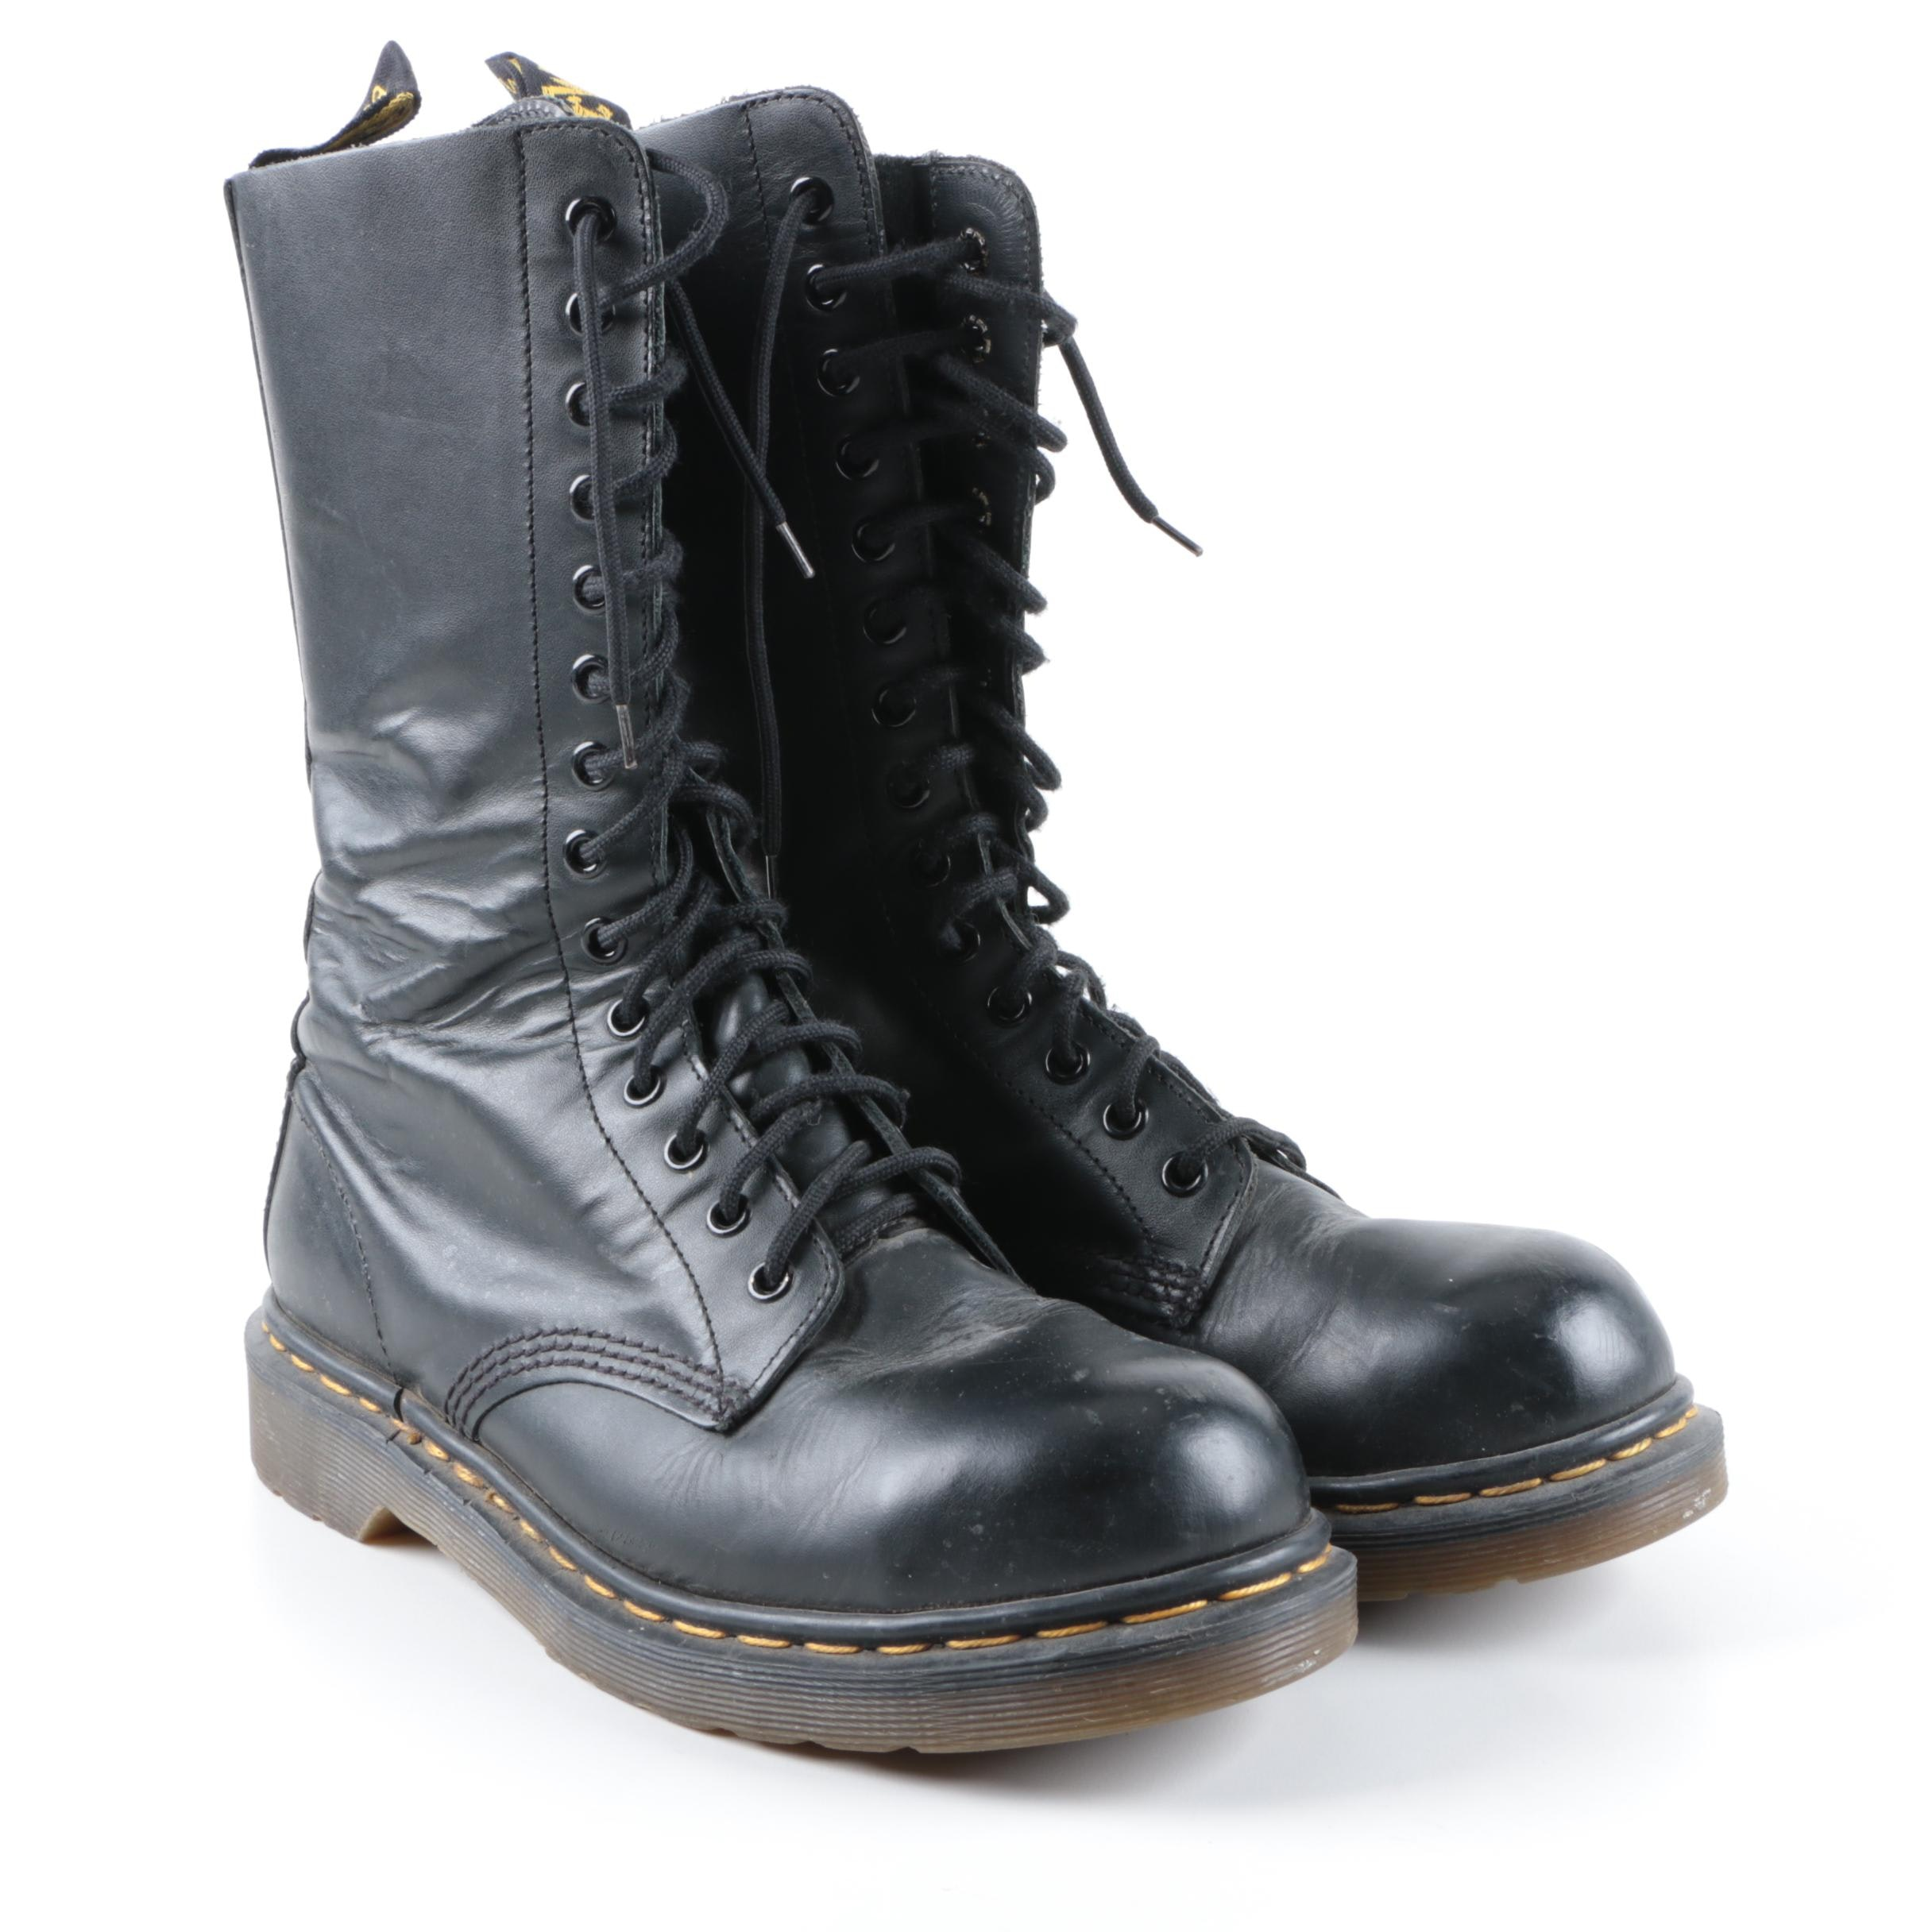 Dr. Martens Black Leather Lace-Up Combat Boots, Made in England